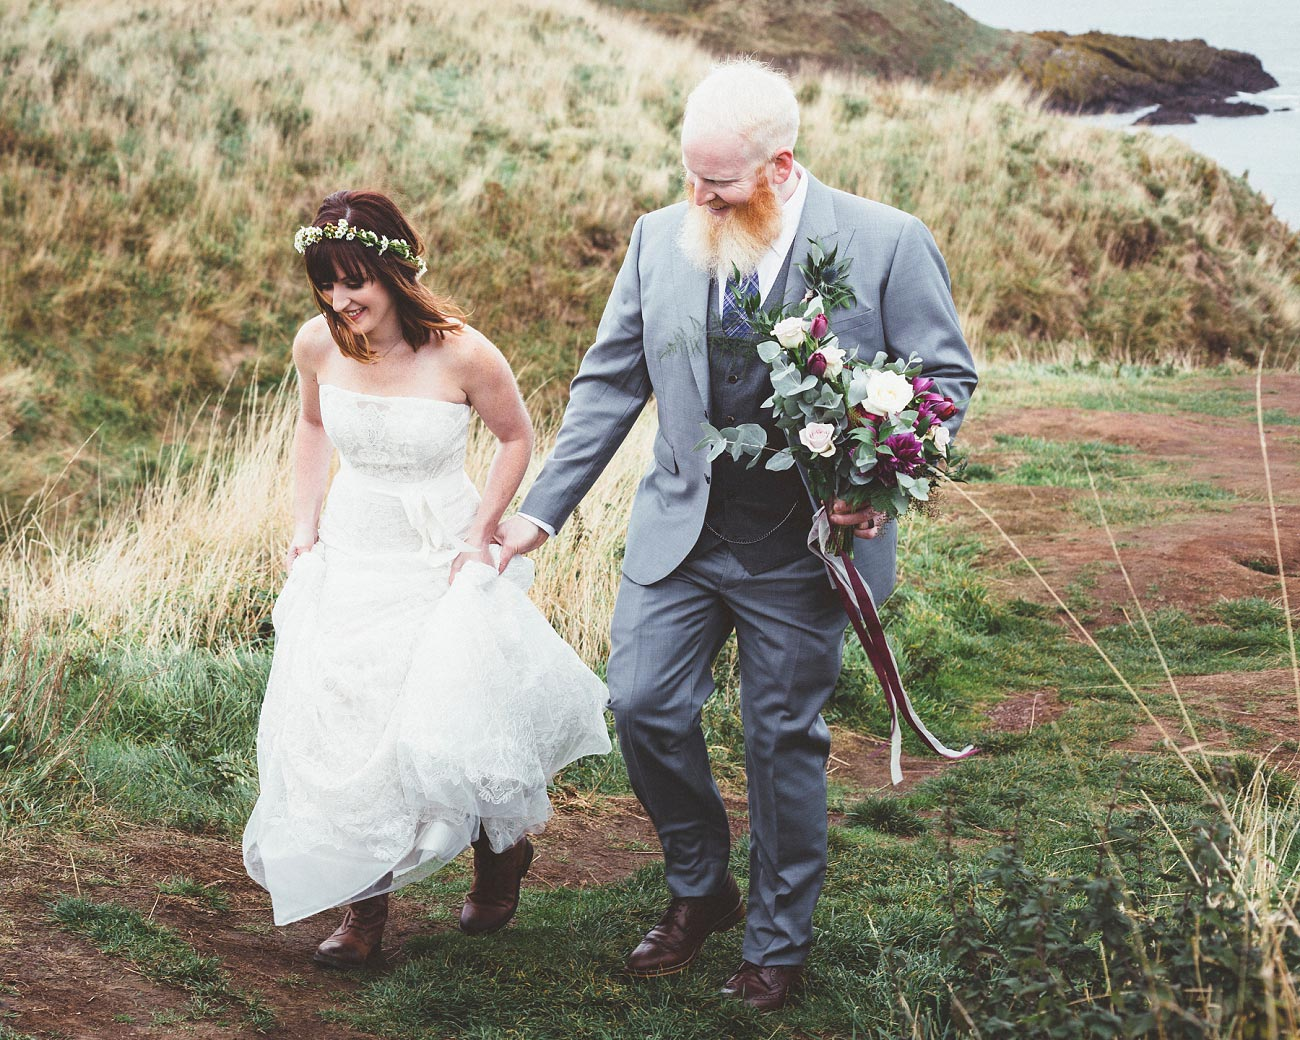 dunnottar castle elopement wedding photographer scotland scottish highlands abderdeenshire aj 0021